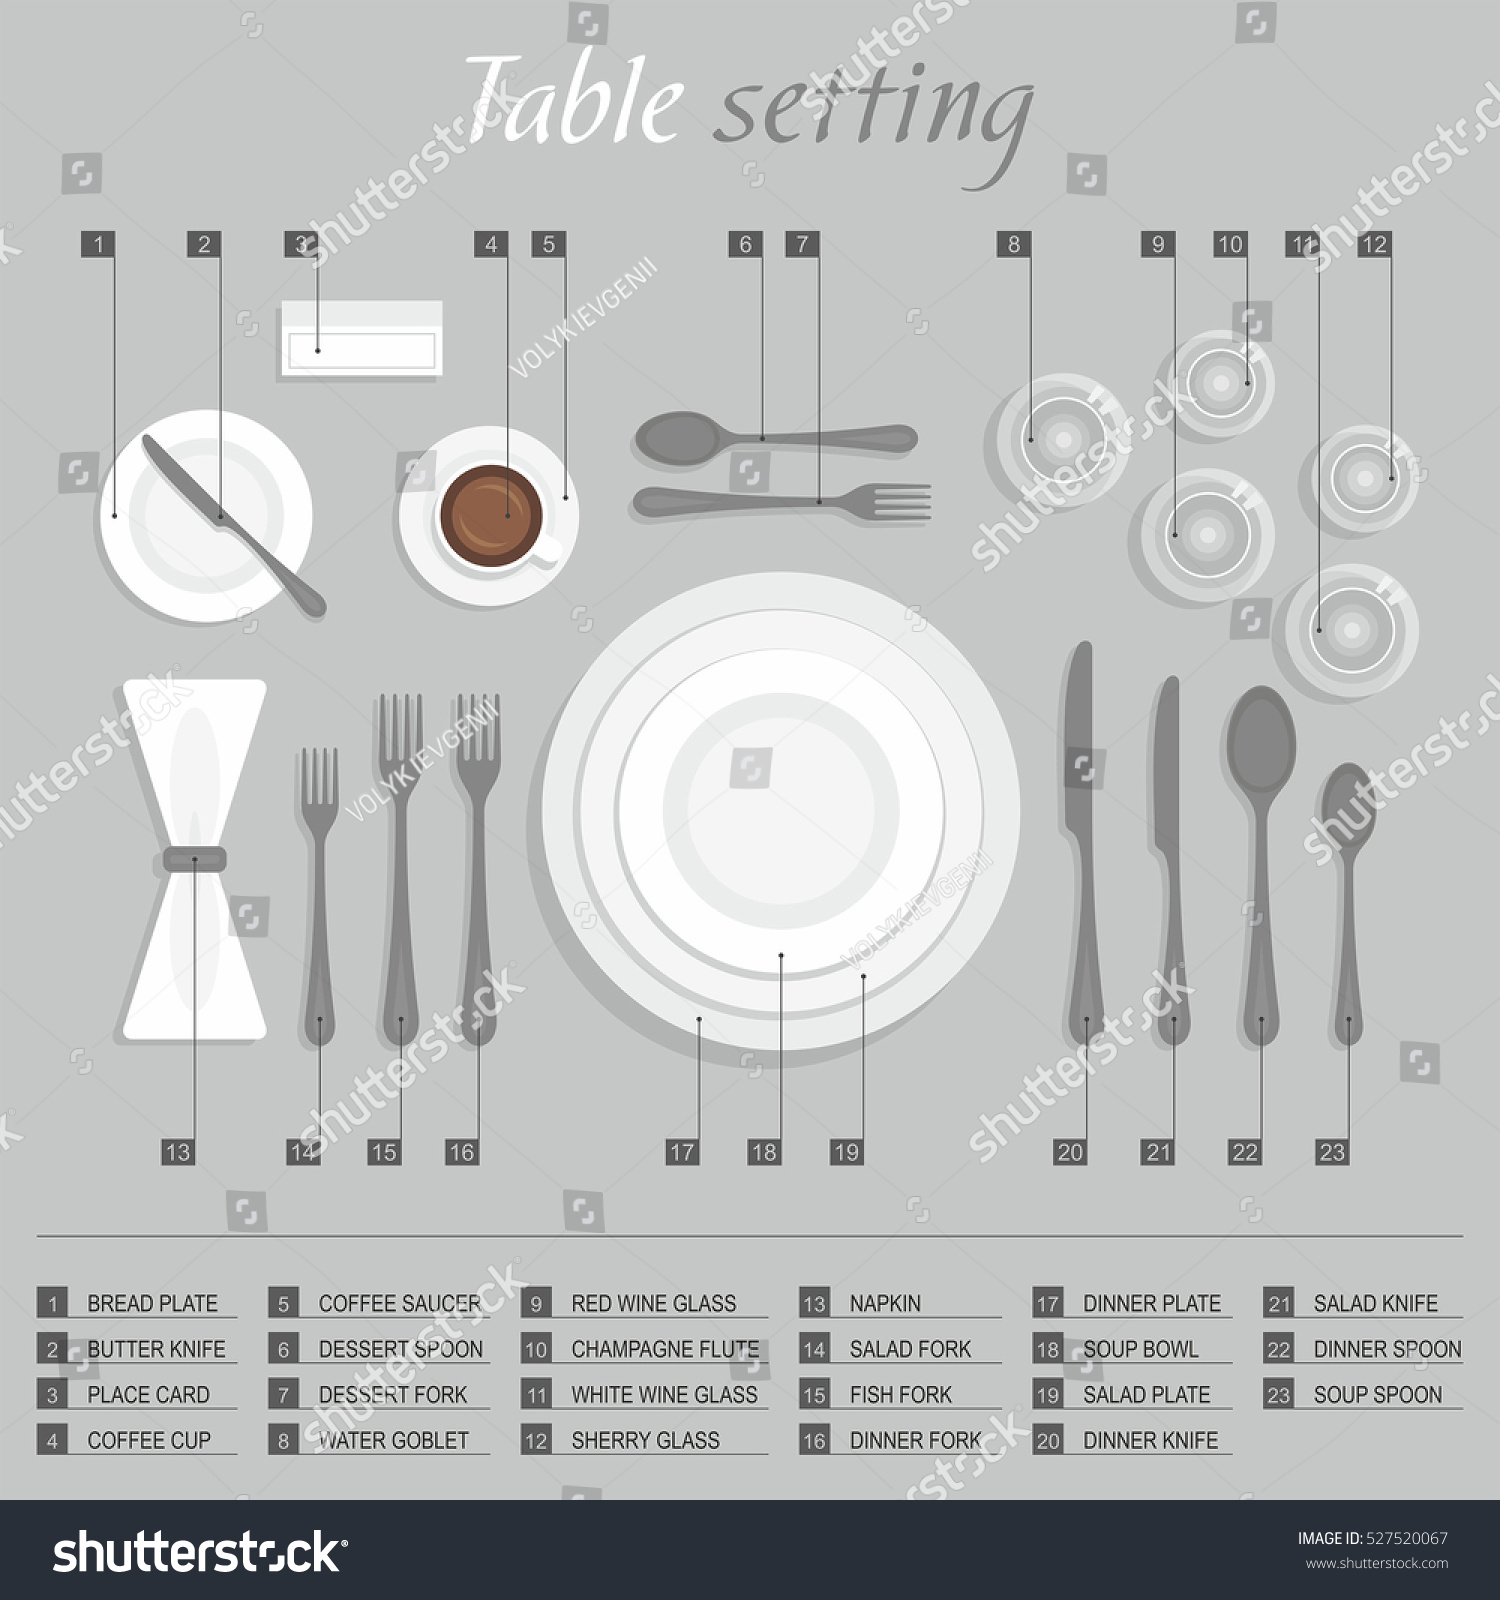 hight resolution of 2003 2019 shutterstock inc table setting